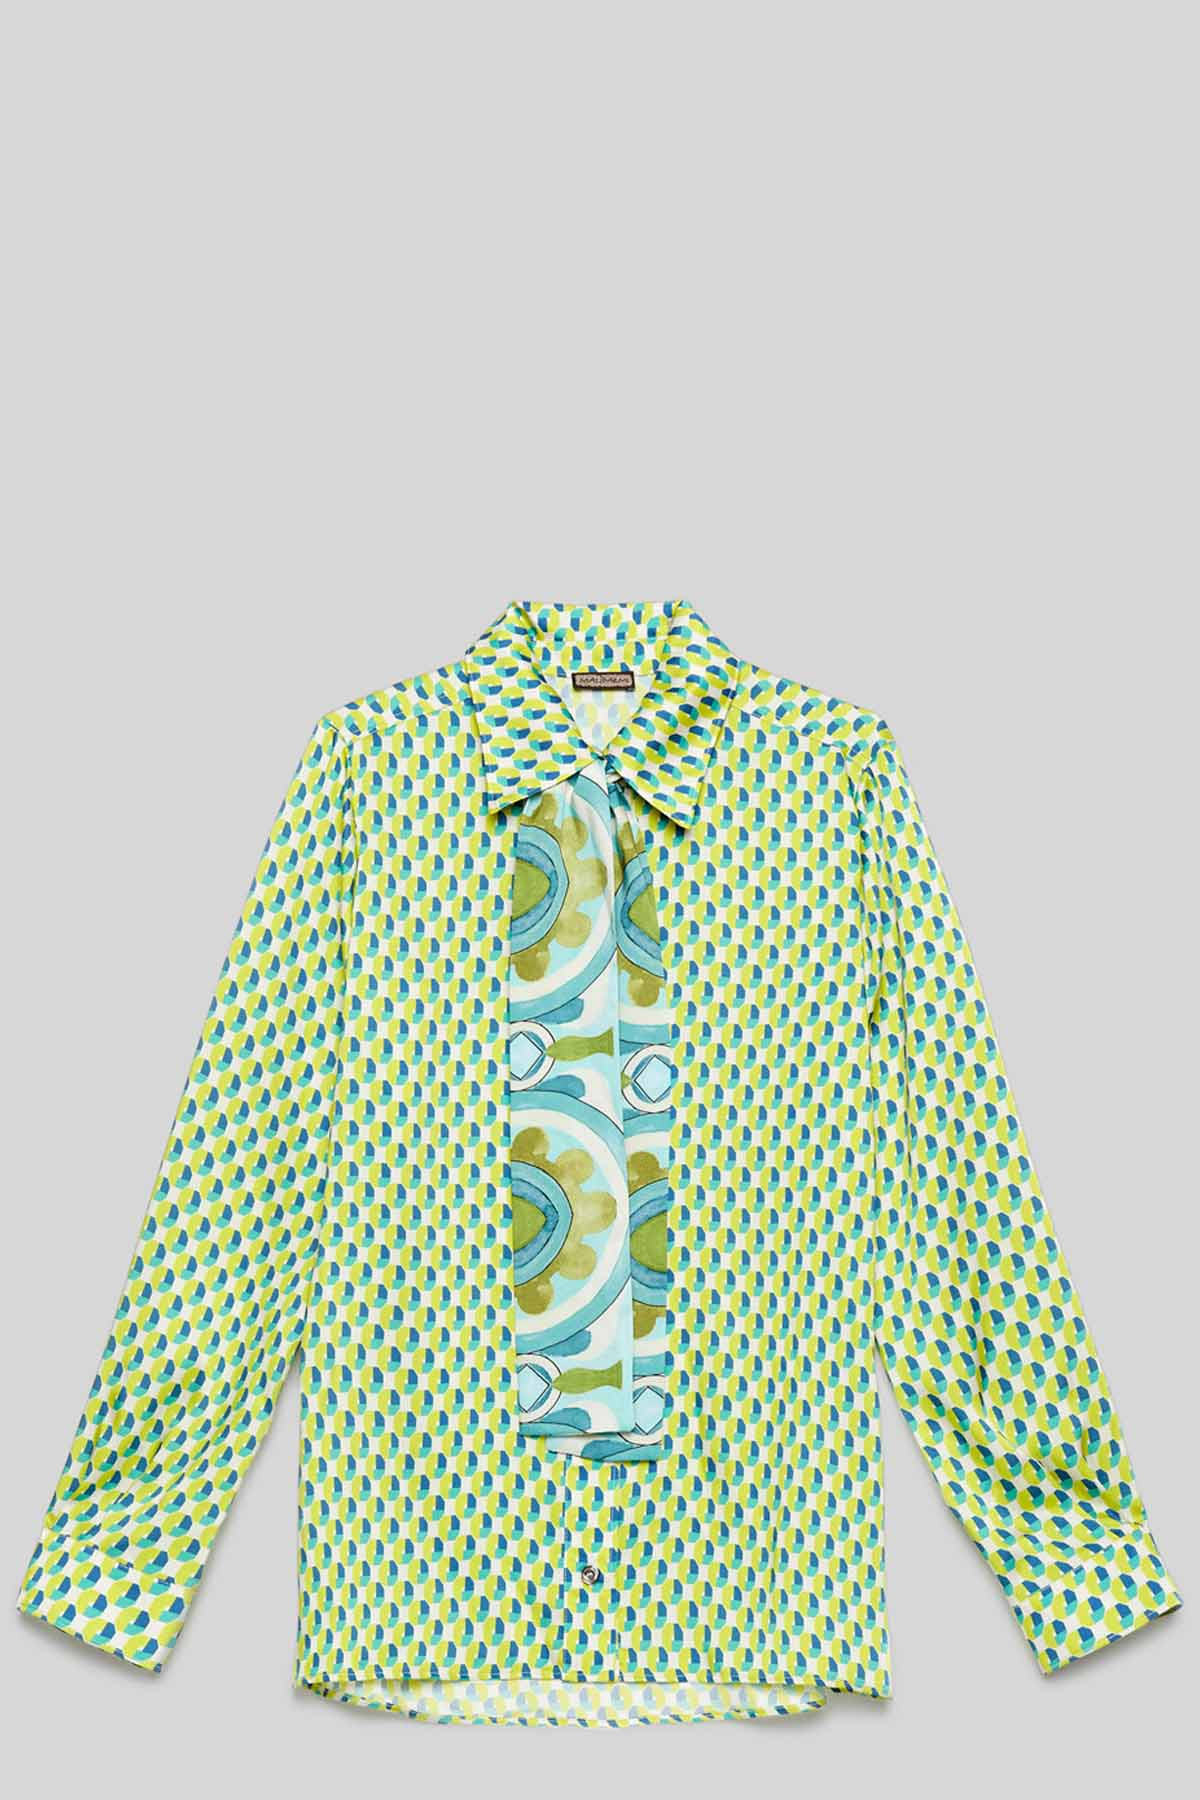 Women's Clothing Green and Turquoise Twill Patch Shirt with Tie Maliparmi | Shirts and tops | JM452660049A8207